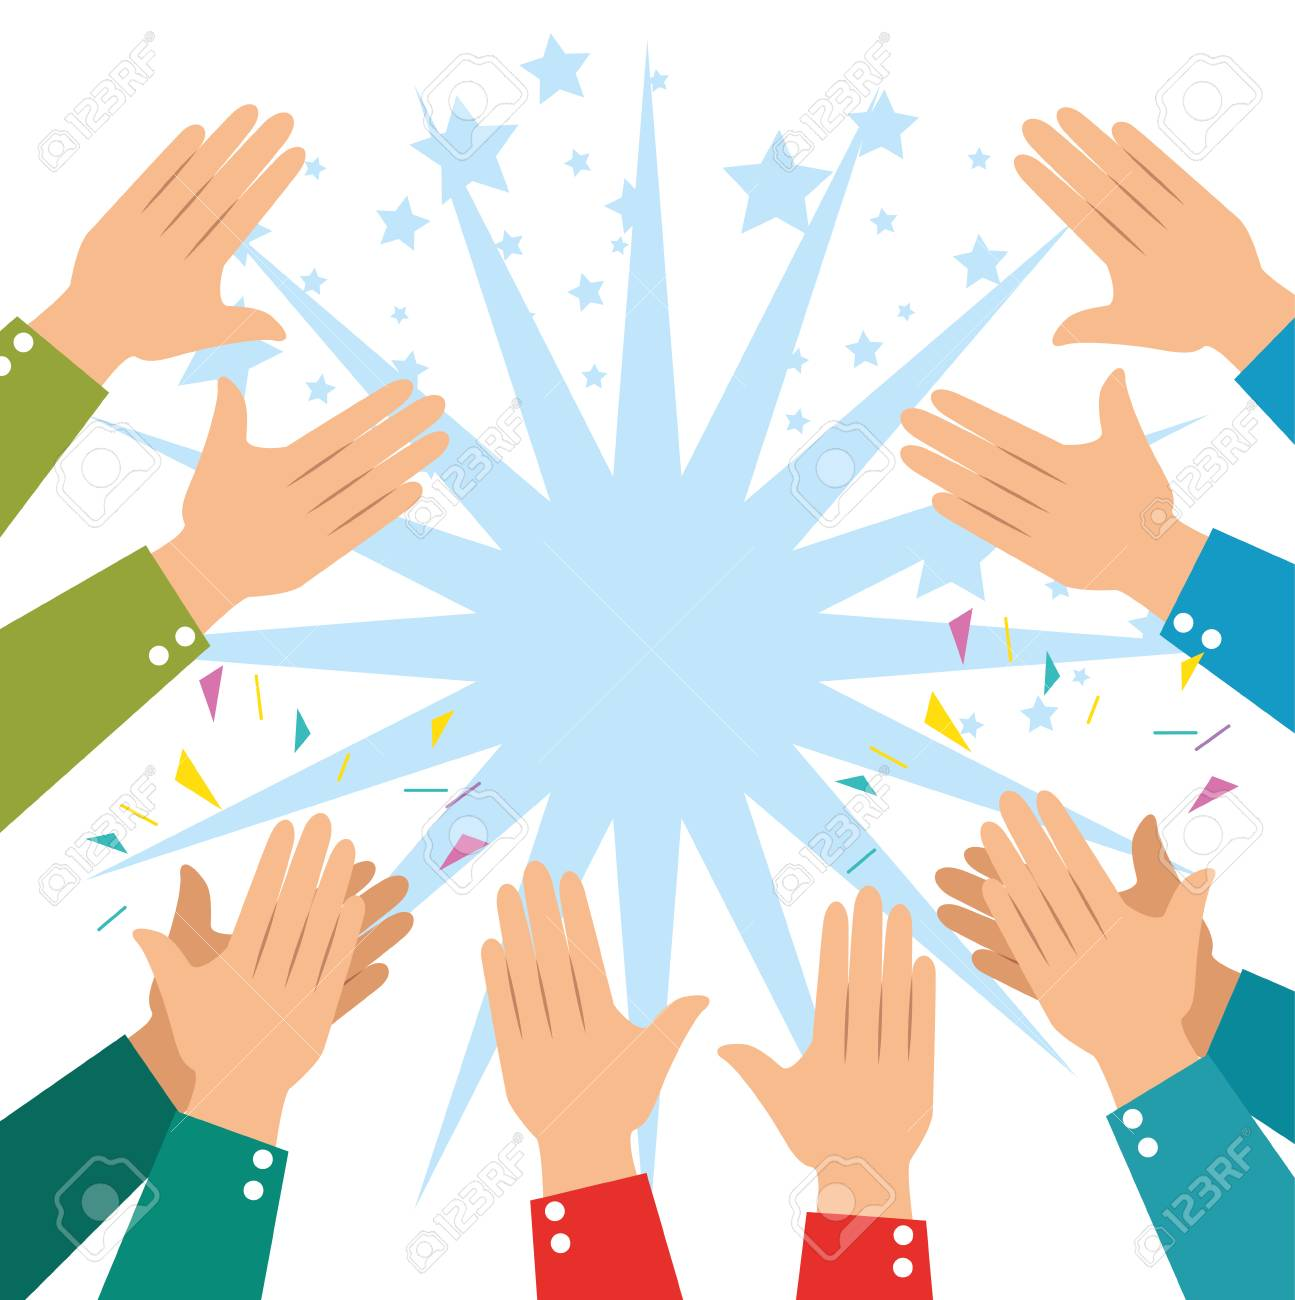 human hands clapping ovation applaud hands vector illustration graphic design - 87694282